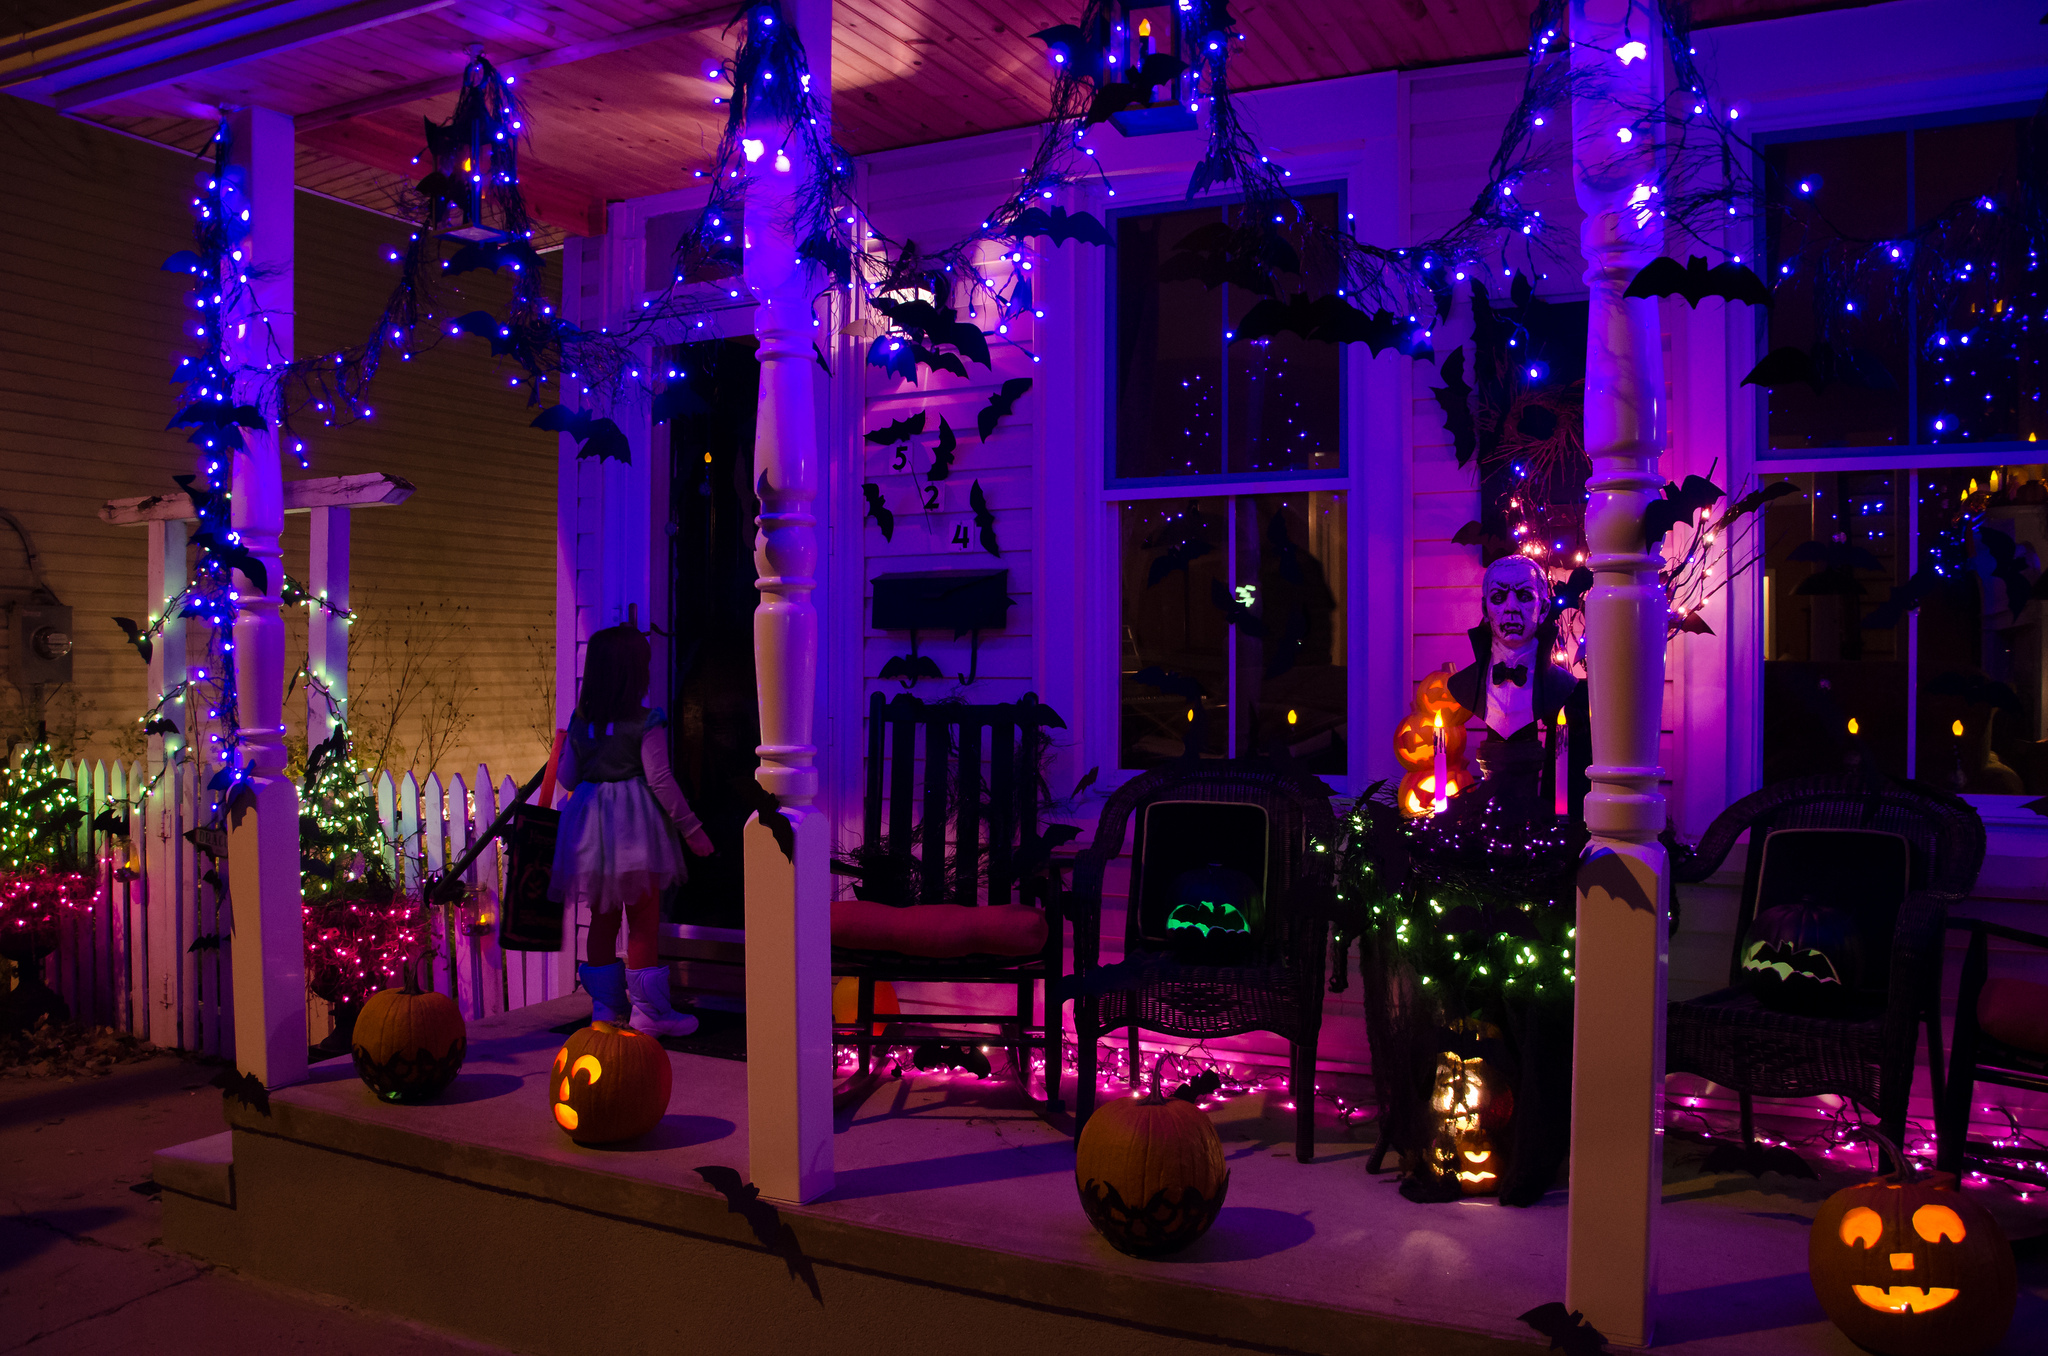 outdoor halloween decorations lights - Holloween Decorations